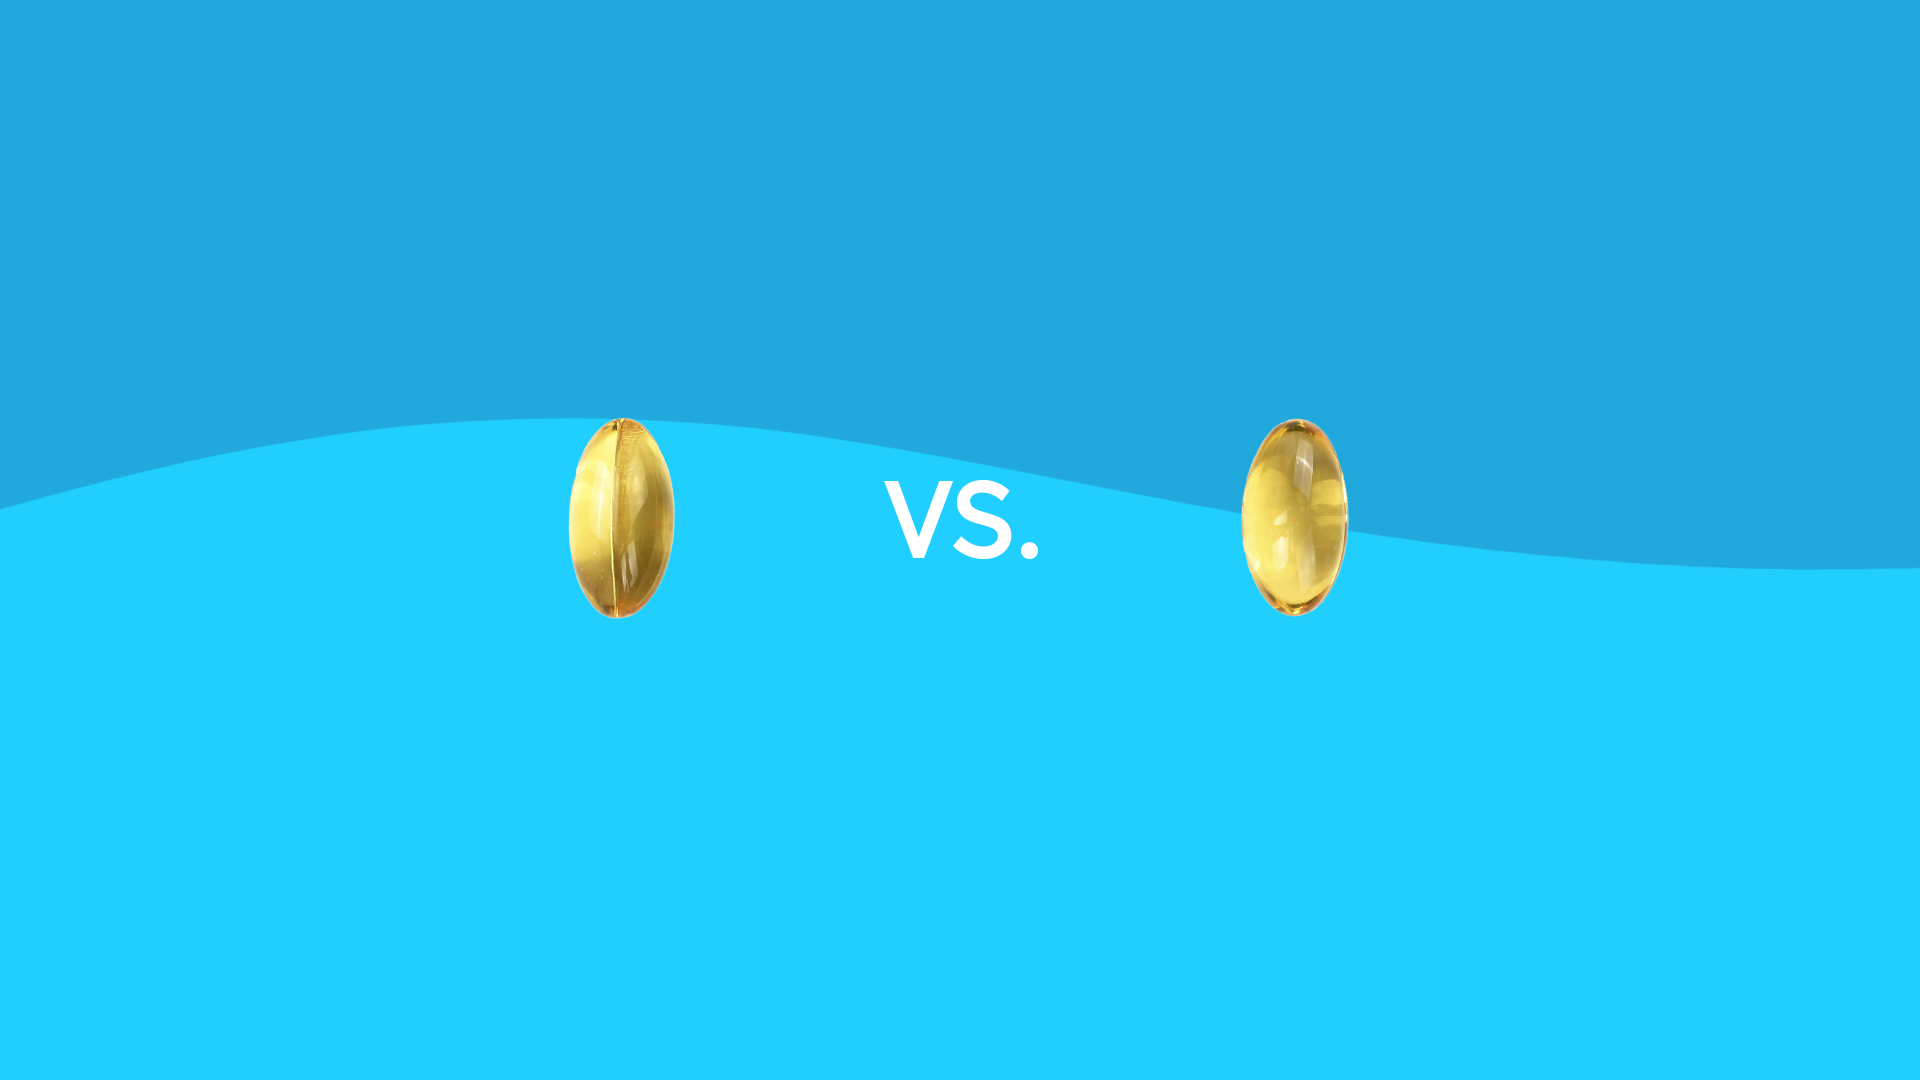 Vitamin D vs. D3: Differences, similarities, and which is better for you